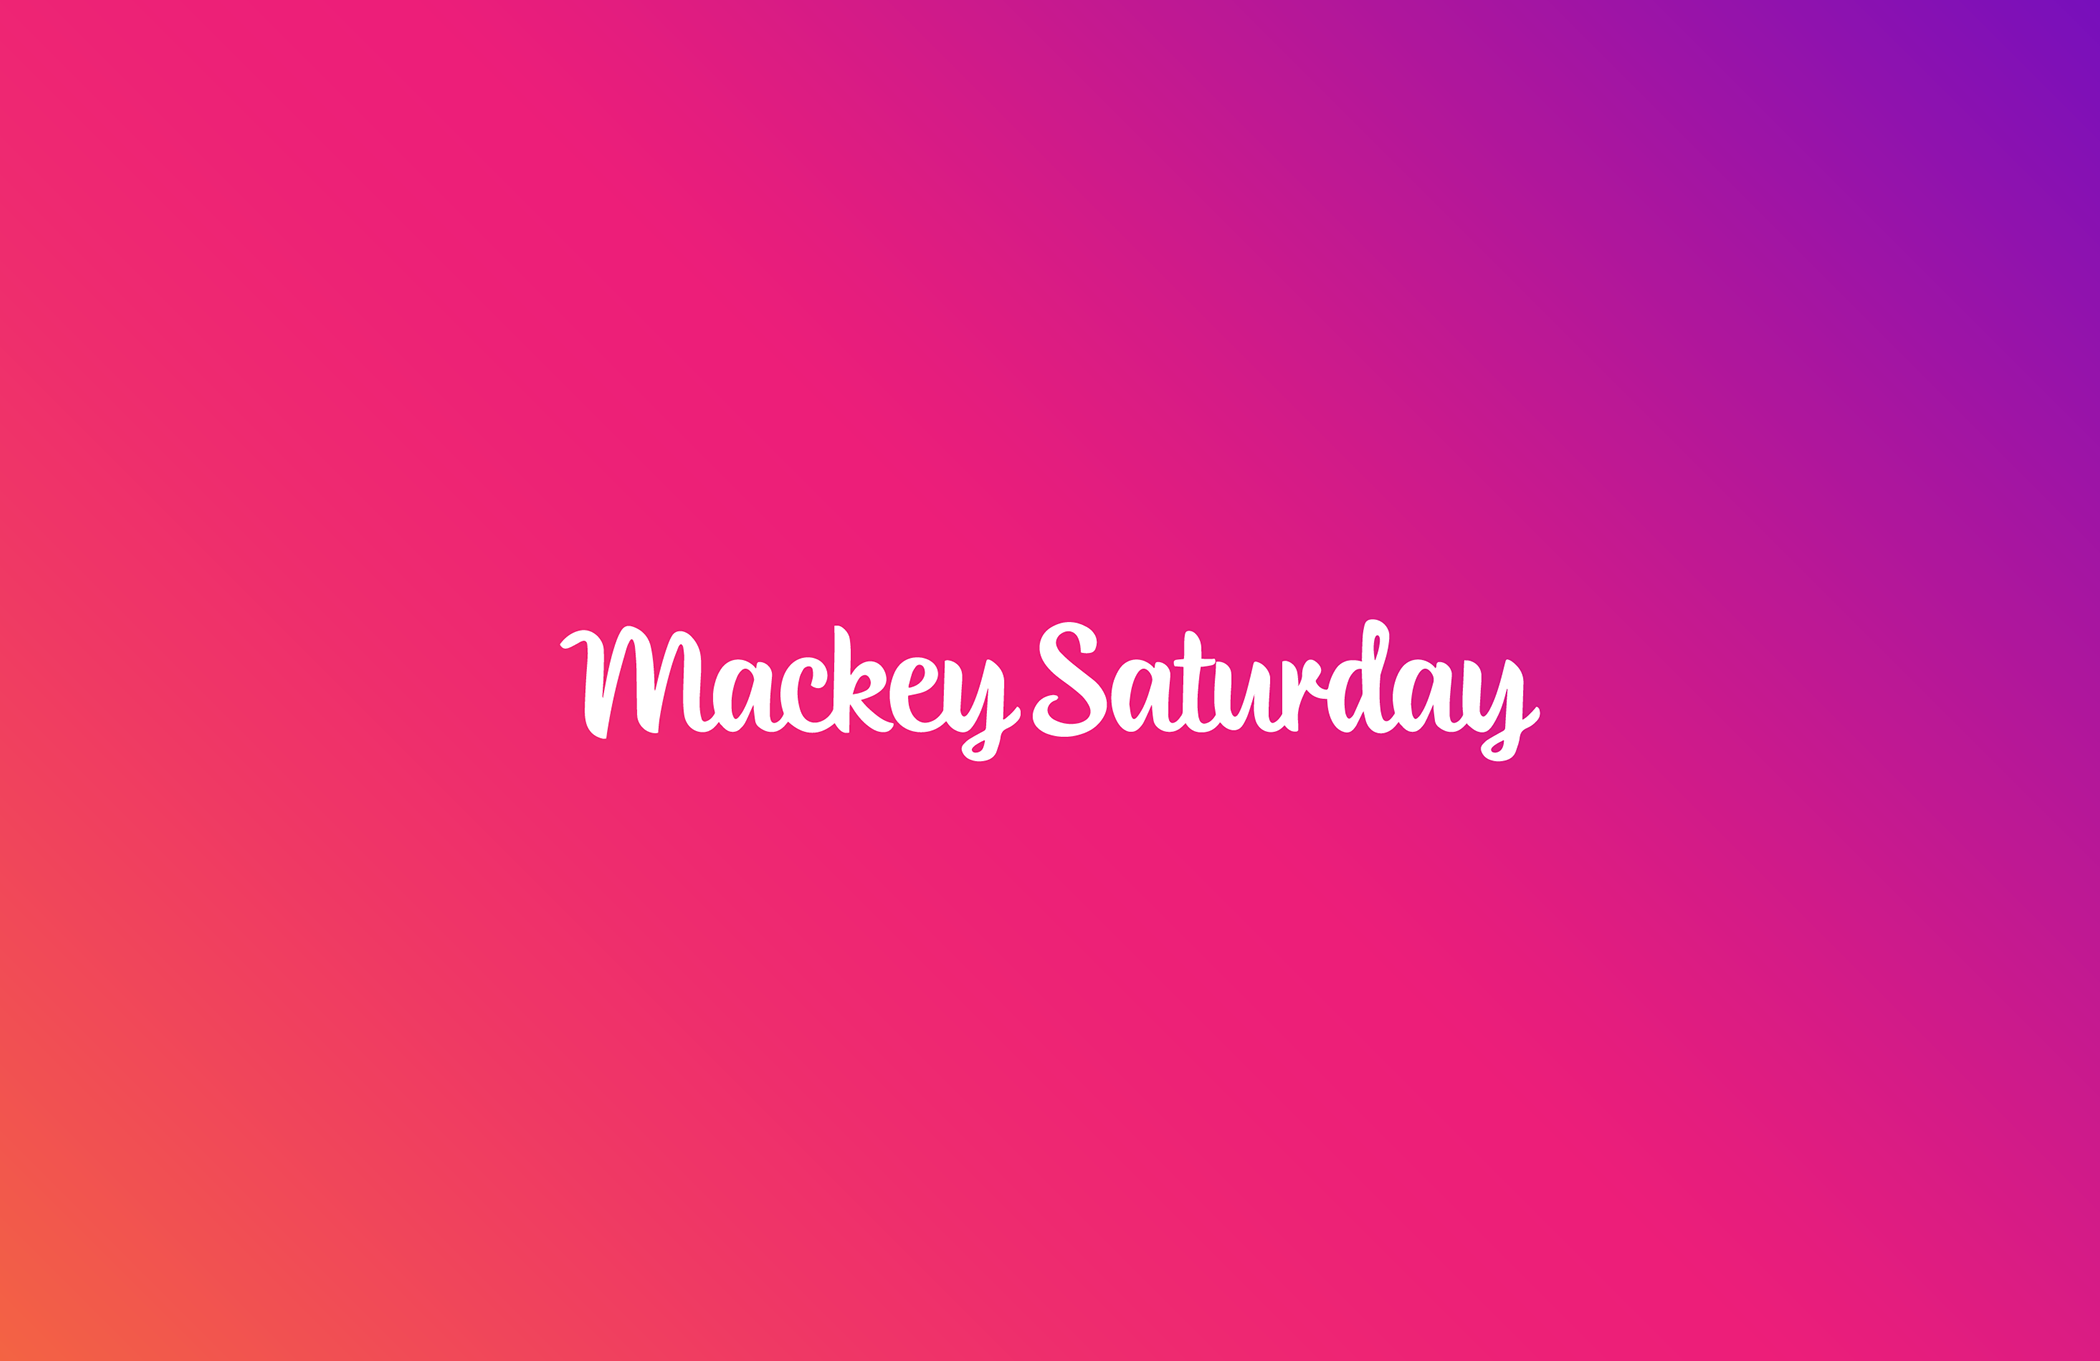 Mackey Saturday - Agency behind the Instagram logo